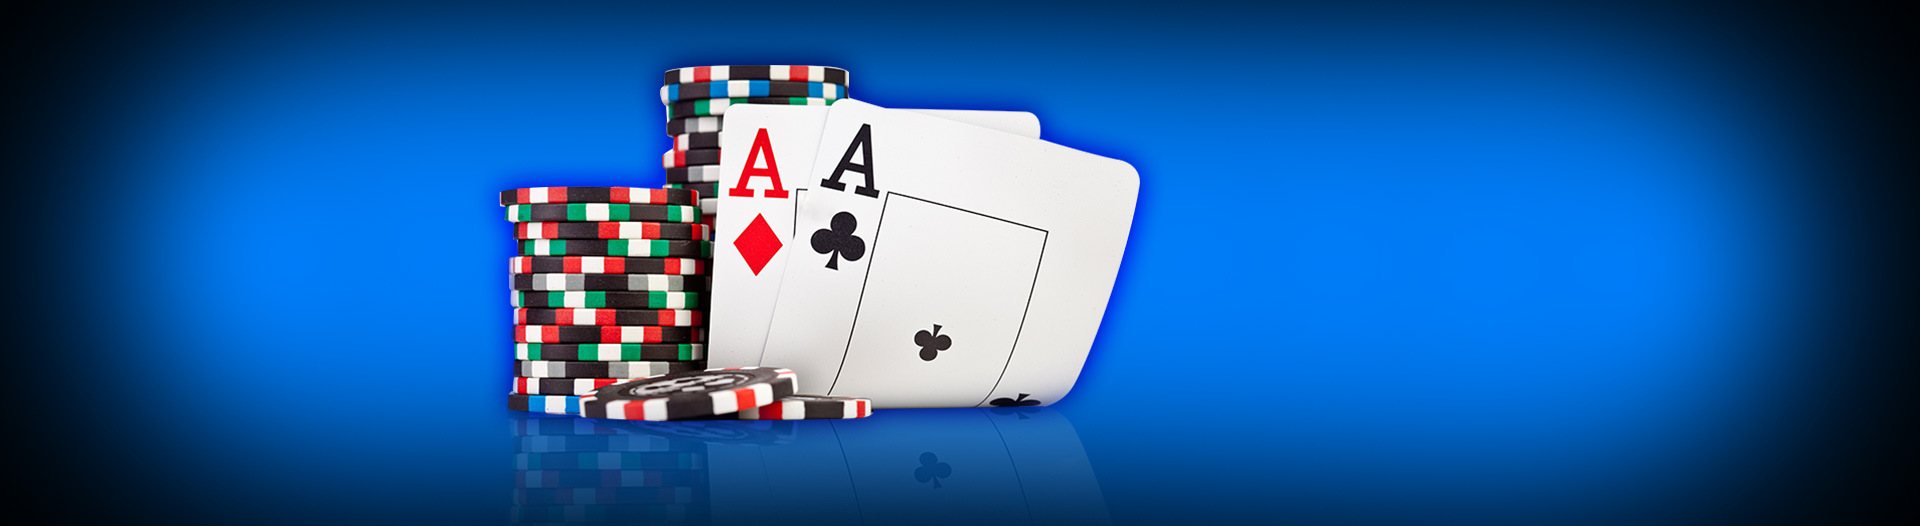 888 poker instant play